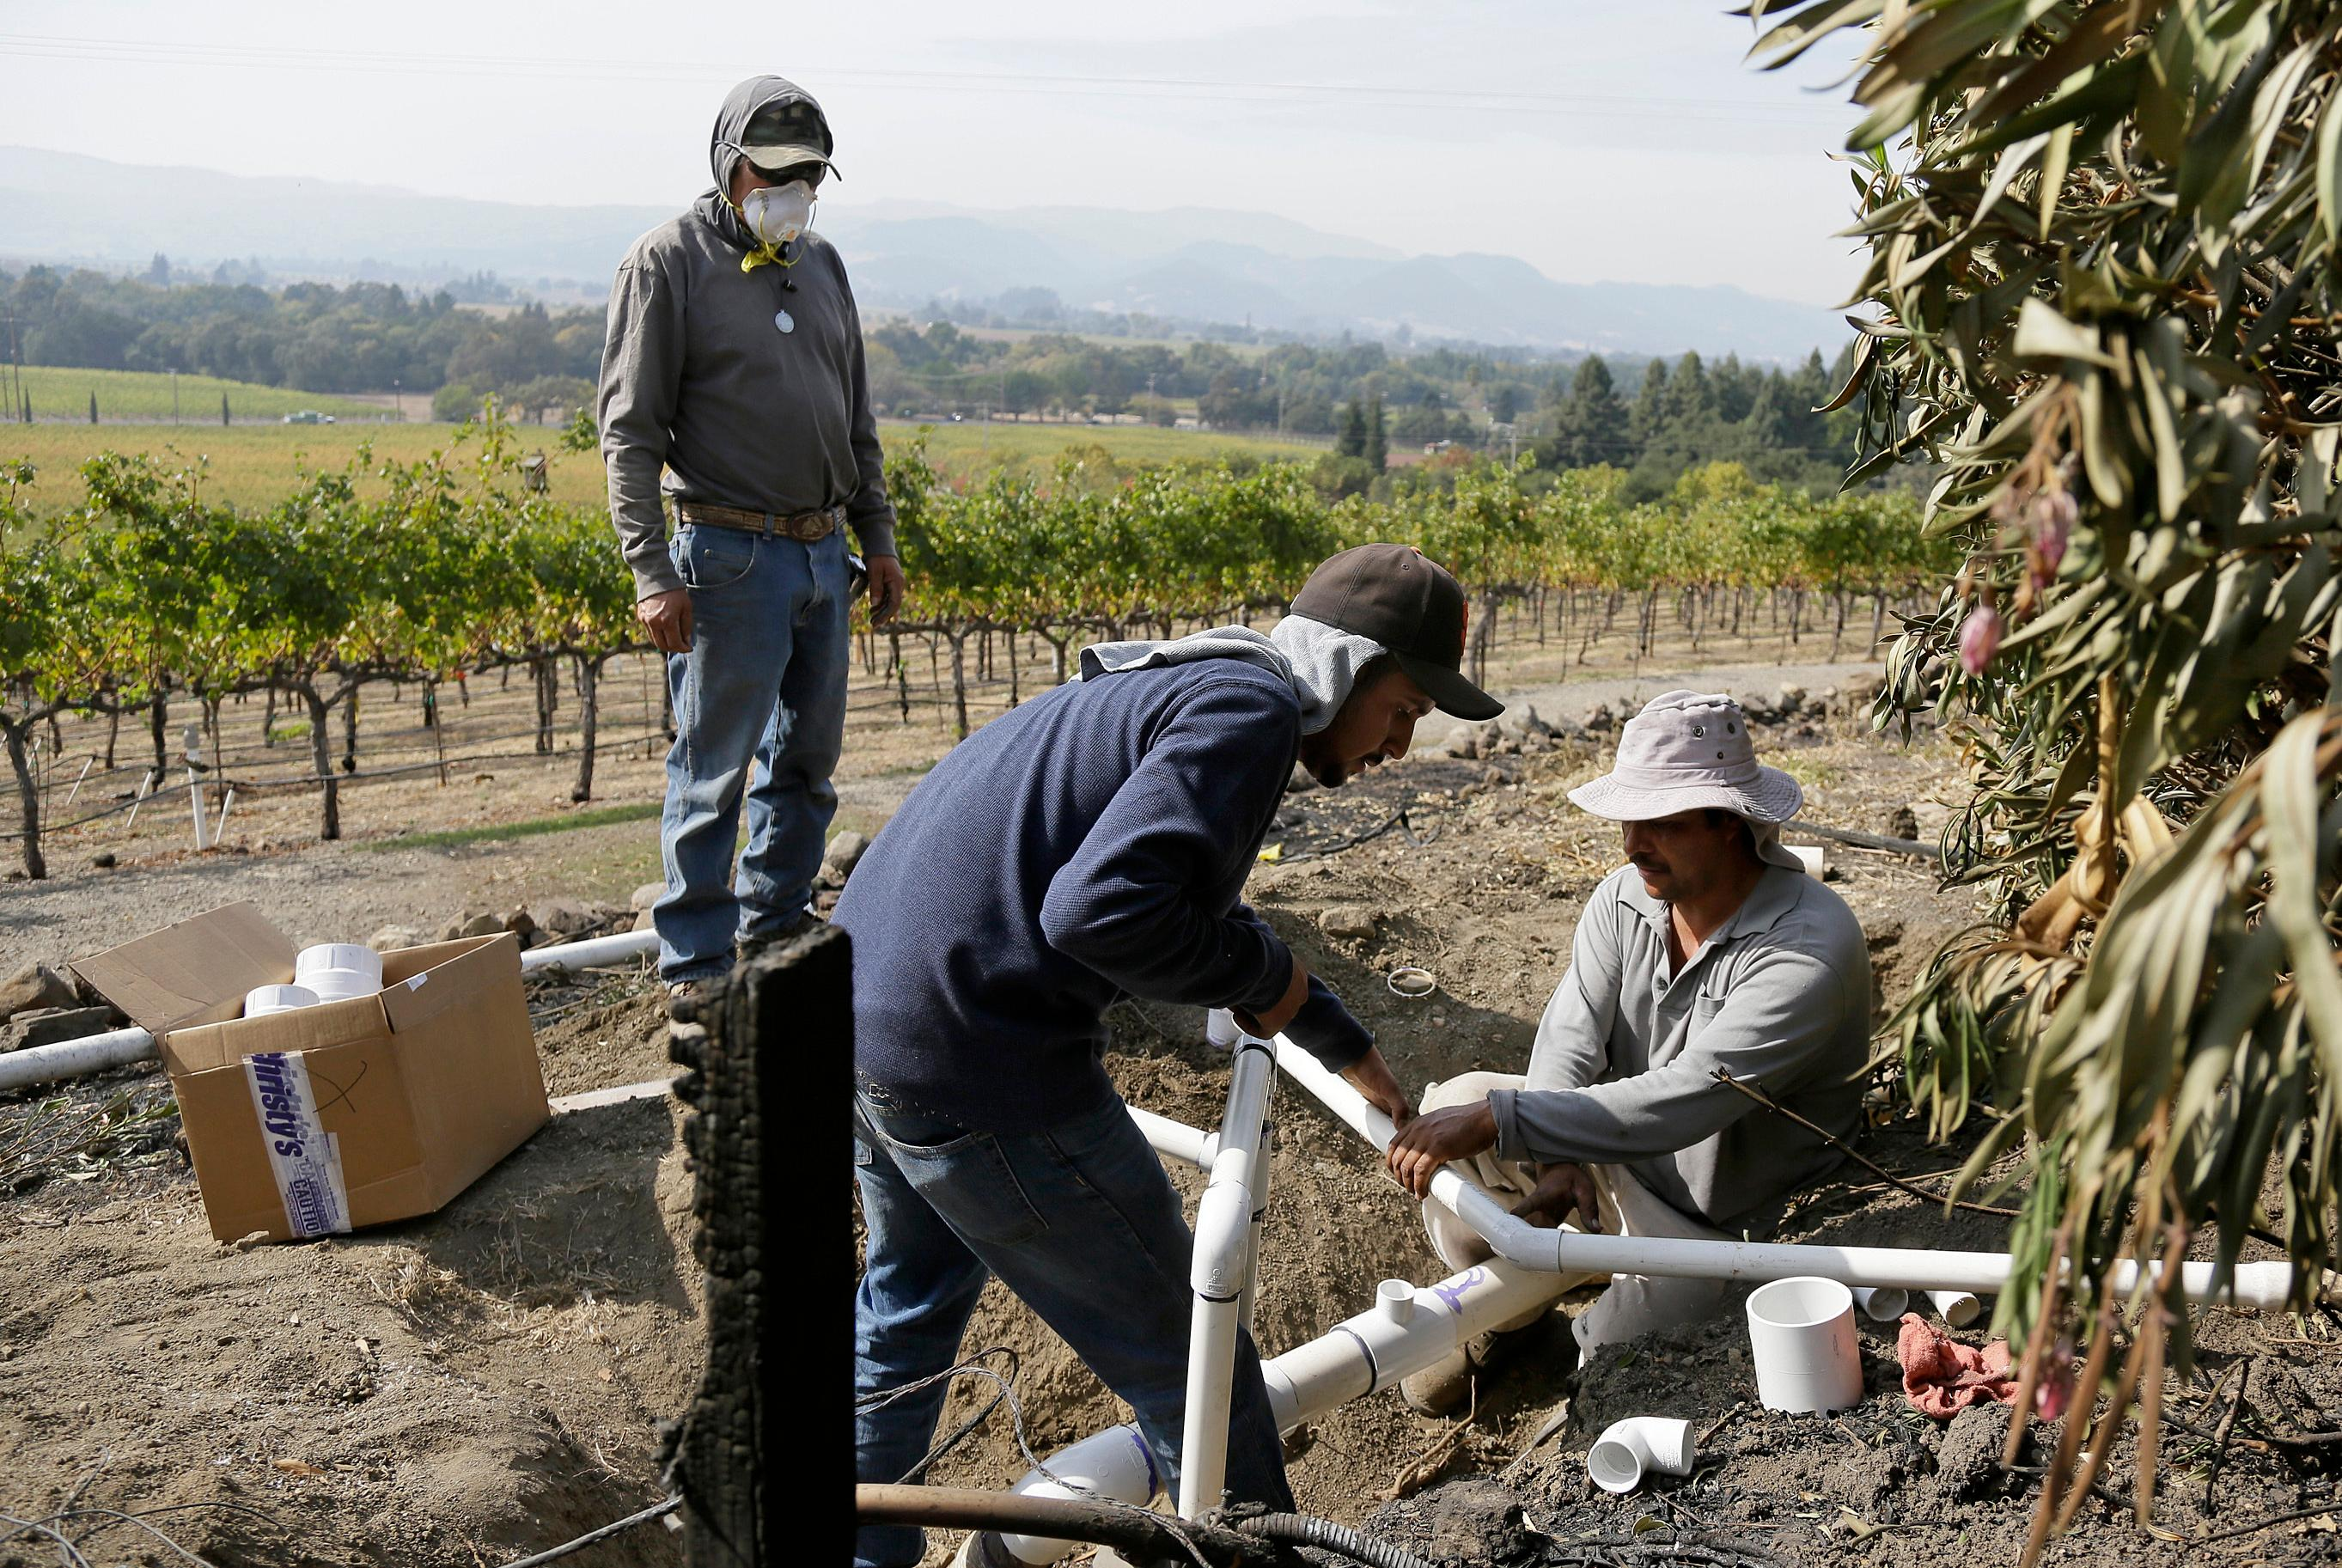 Workers at the Signorello Estate winery install new irrigation pipes to replace ones burned by wildfire Monday, Oct. 16, 2017, in Napa, Calif. State and local officials say they are trying to get people back into their homes, but they cautioned that it could take days and even weeks for neighborhoods hard hit by Northern California wildfires. (AP Photo/Eric Risberg)